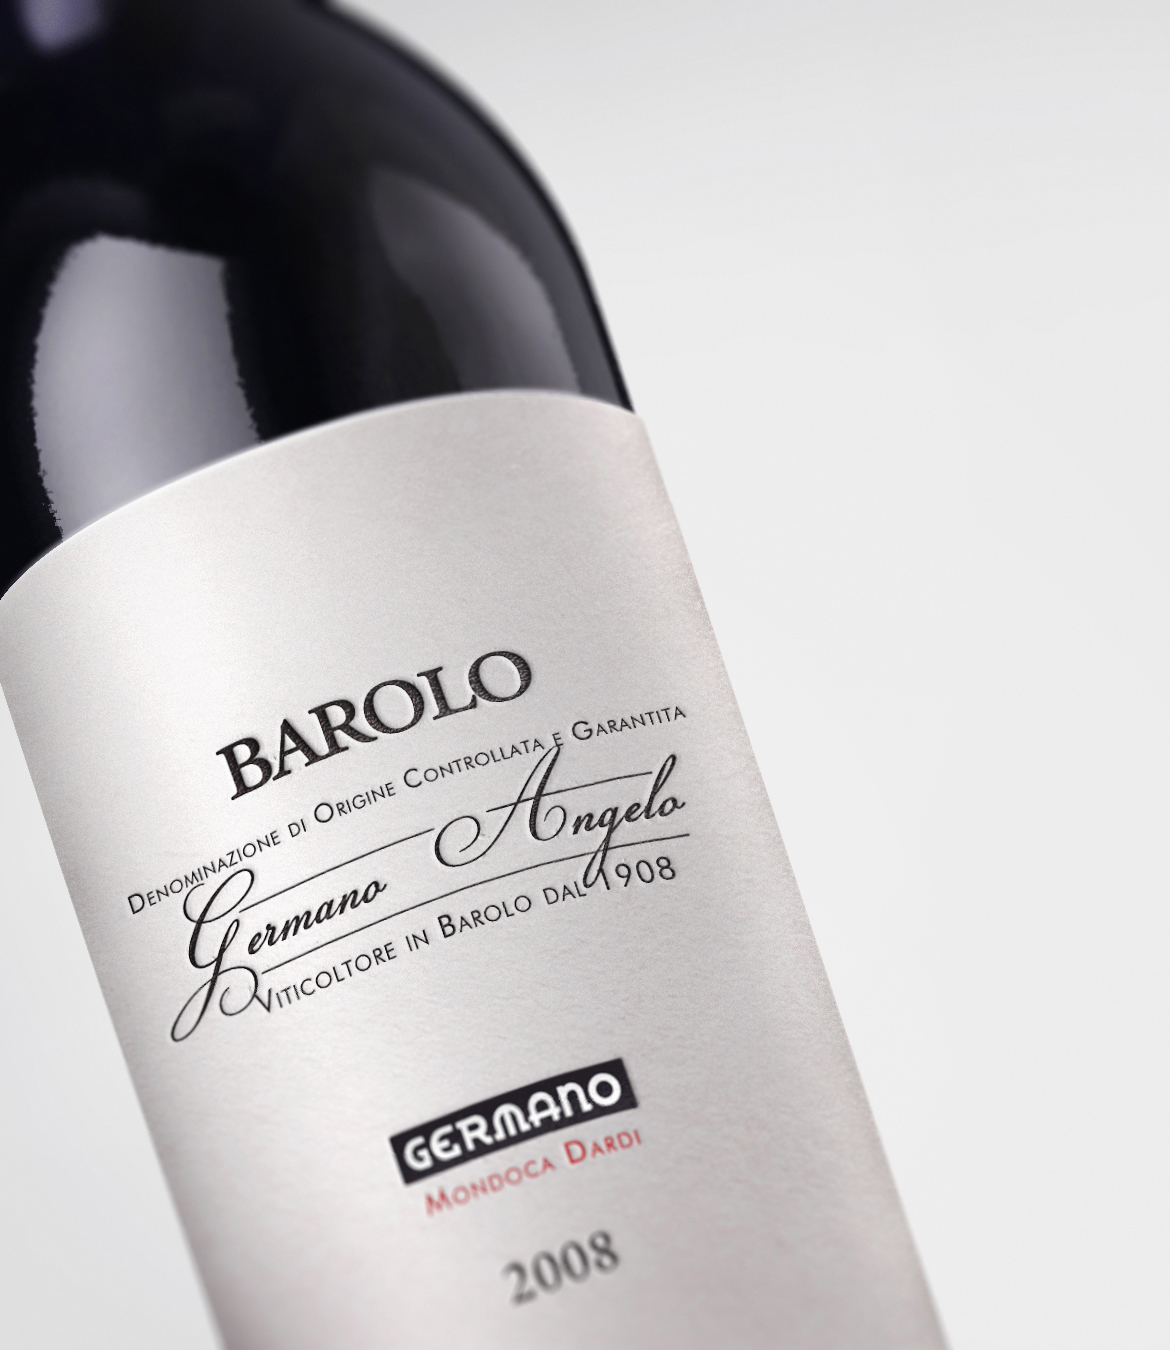 Germano Angelo Label Design